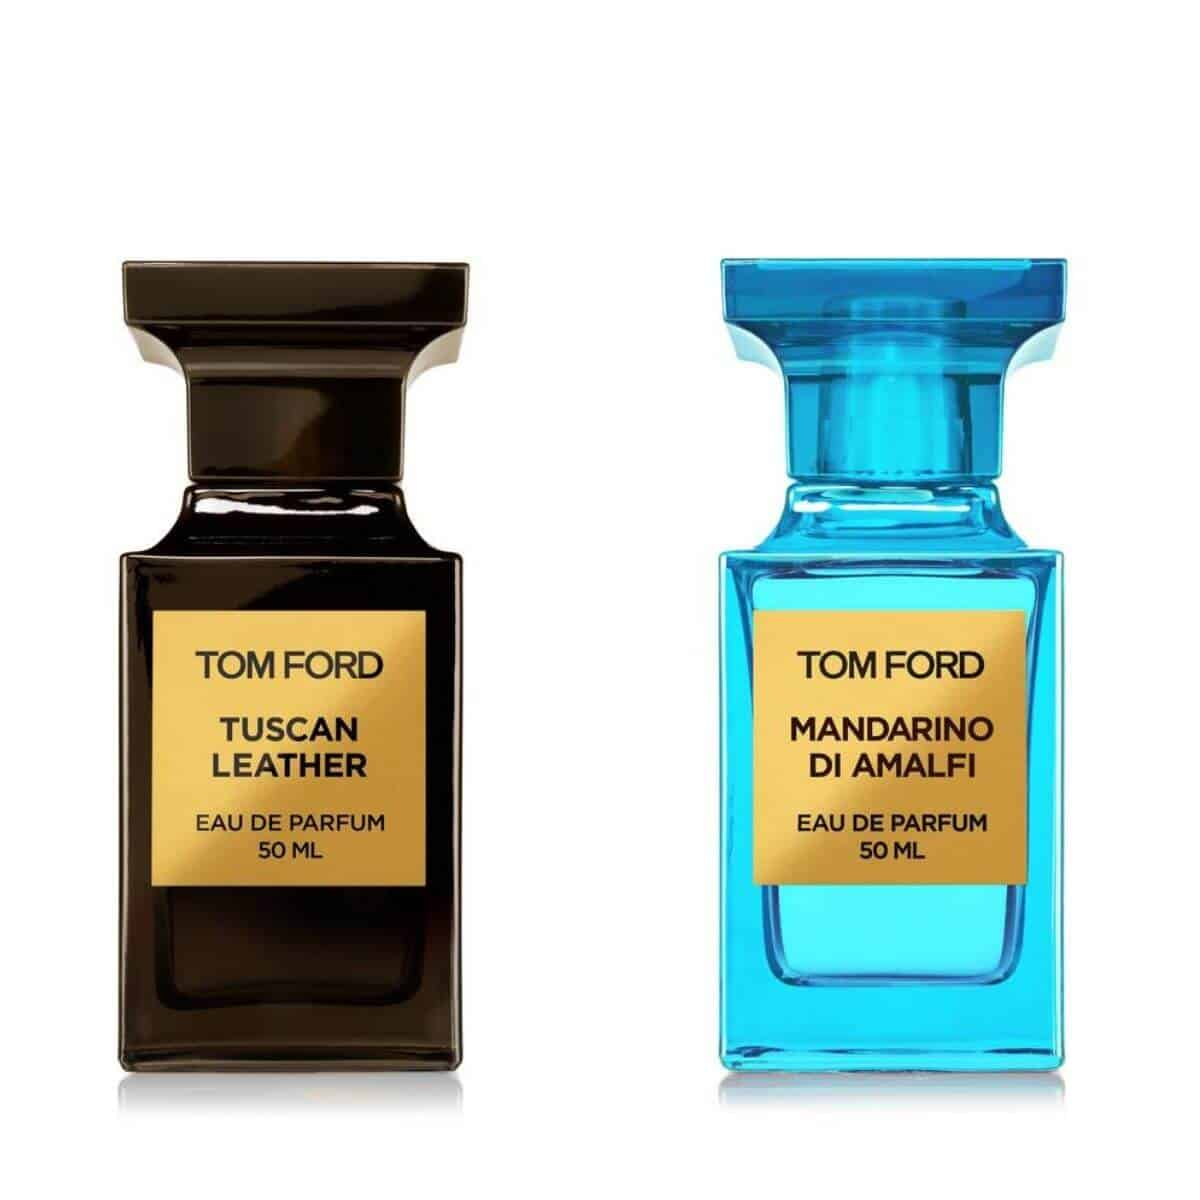 Two Tom Ford colognes.